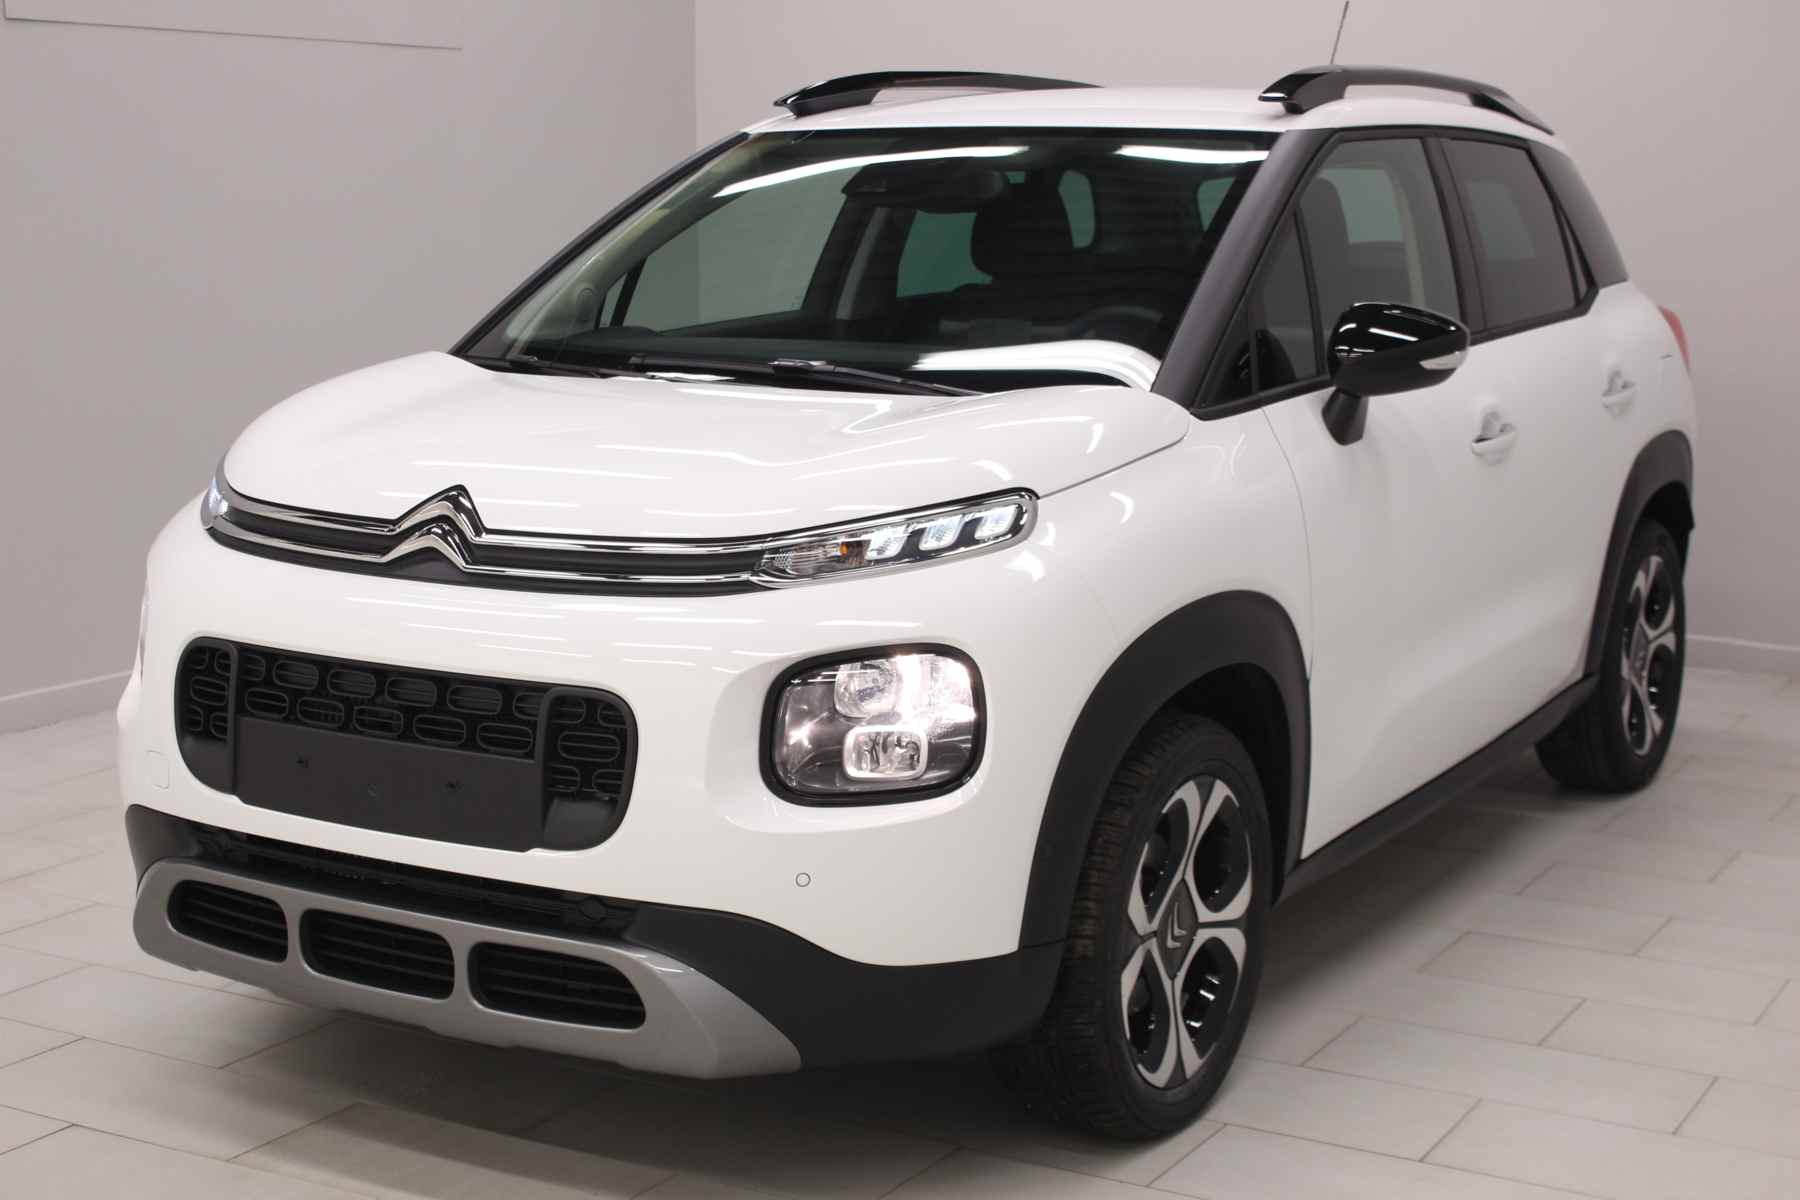 Acheter CITROEN C3 Aircross BlueHDi 100 S&S Feel Natural White + Pack City + Grip Control avec options chez un mandataire auto